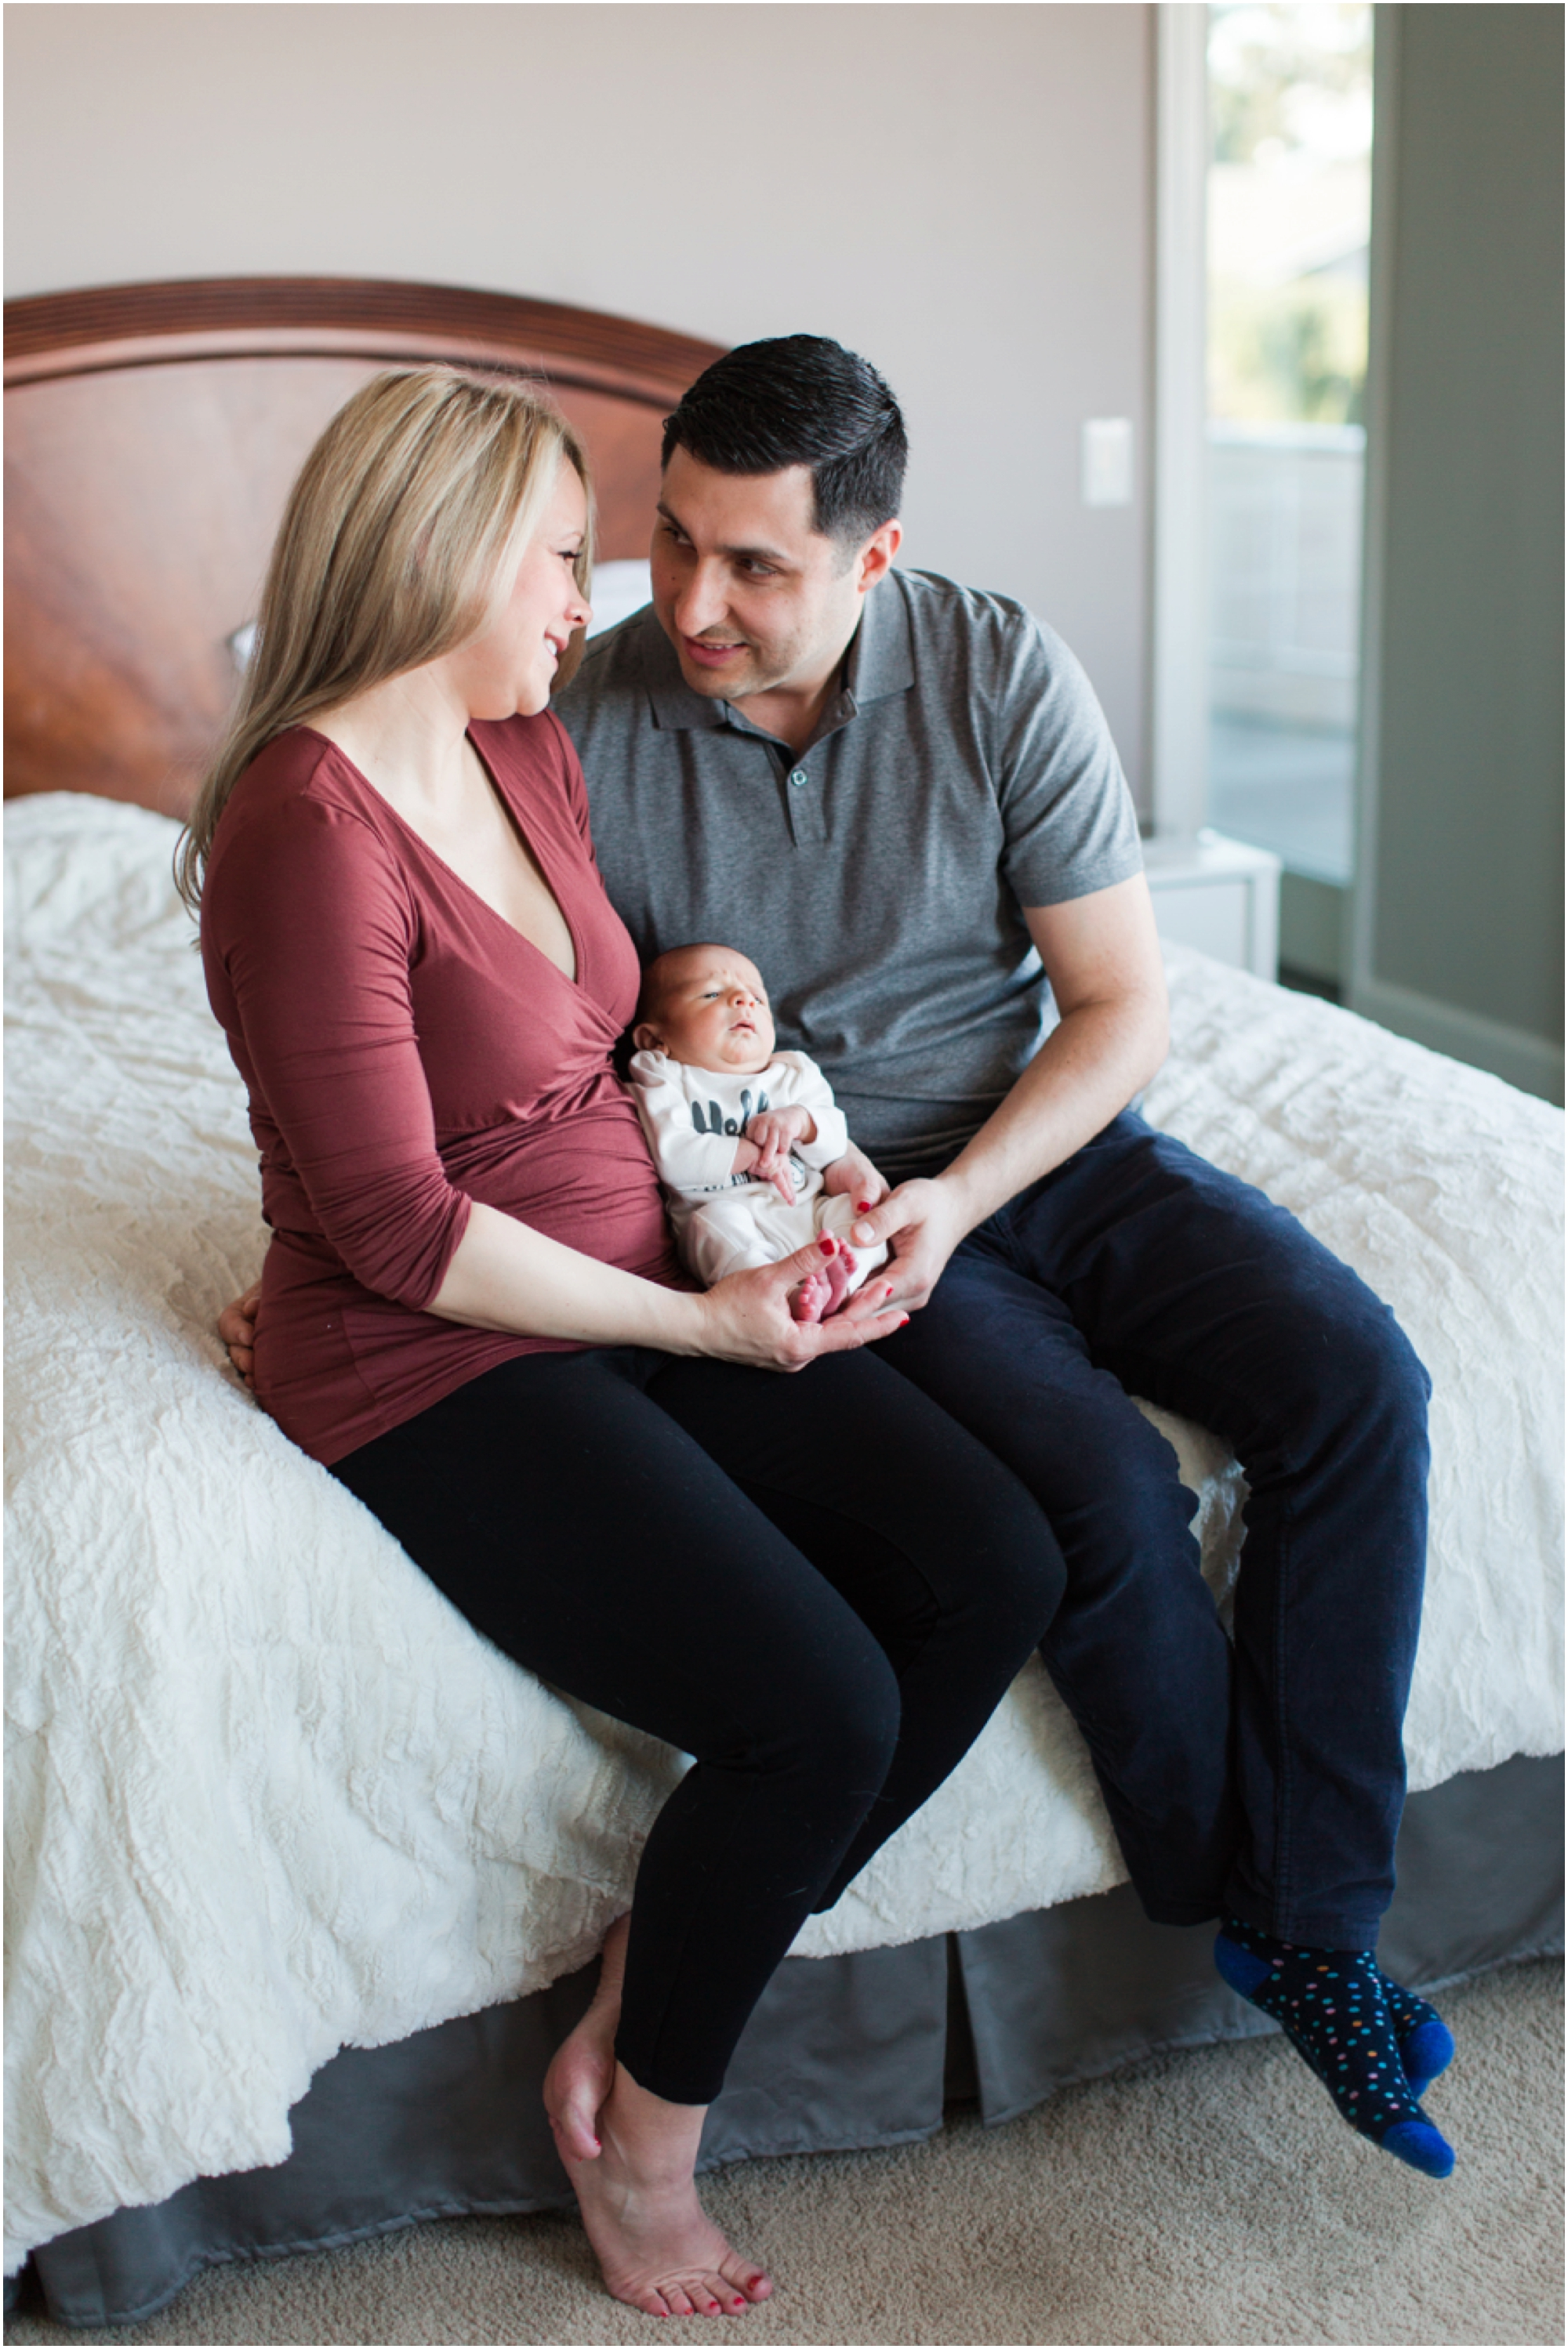 Lifestyle newborn photos by Briana Calderon Photography based in the Greater Seattle & Tacoma, WA_1047.jpg